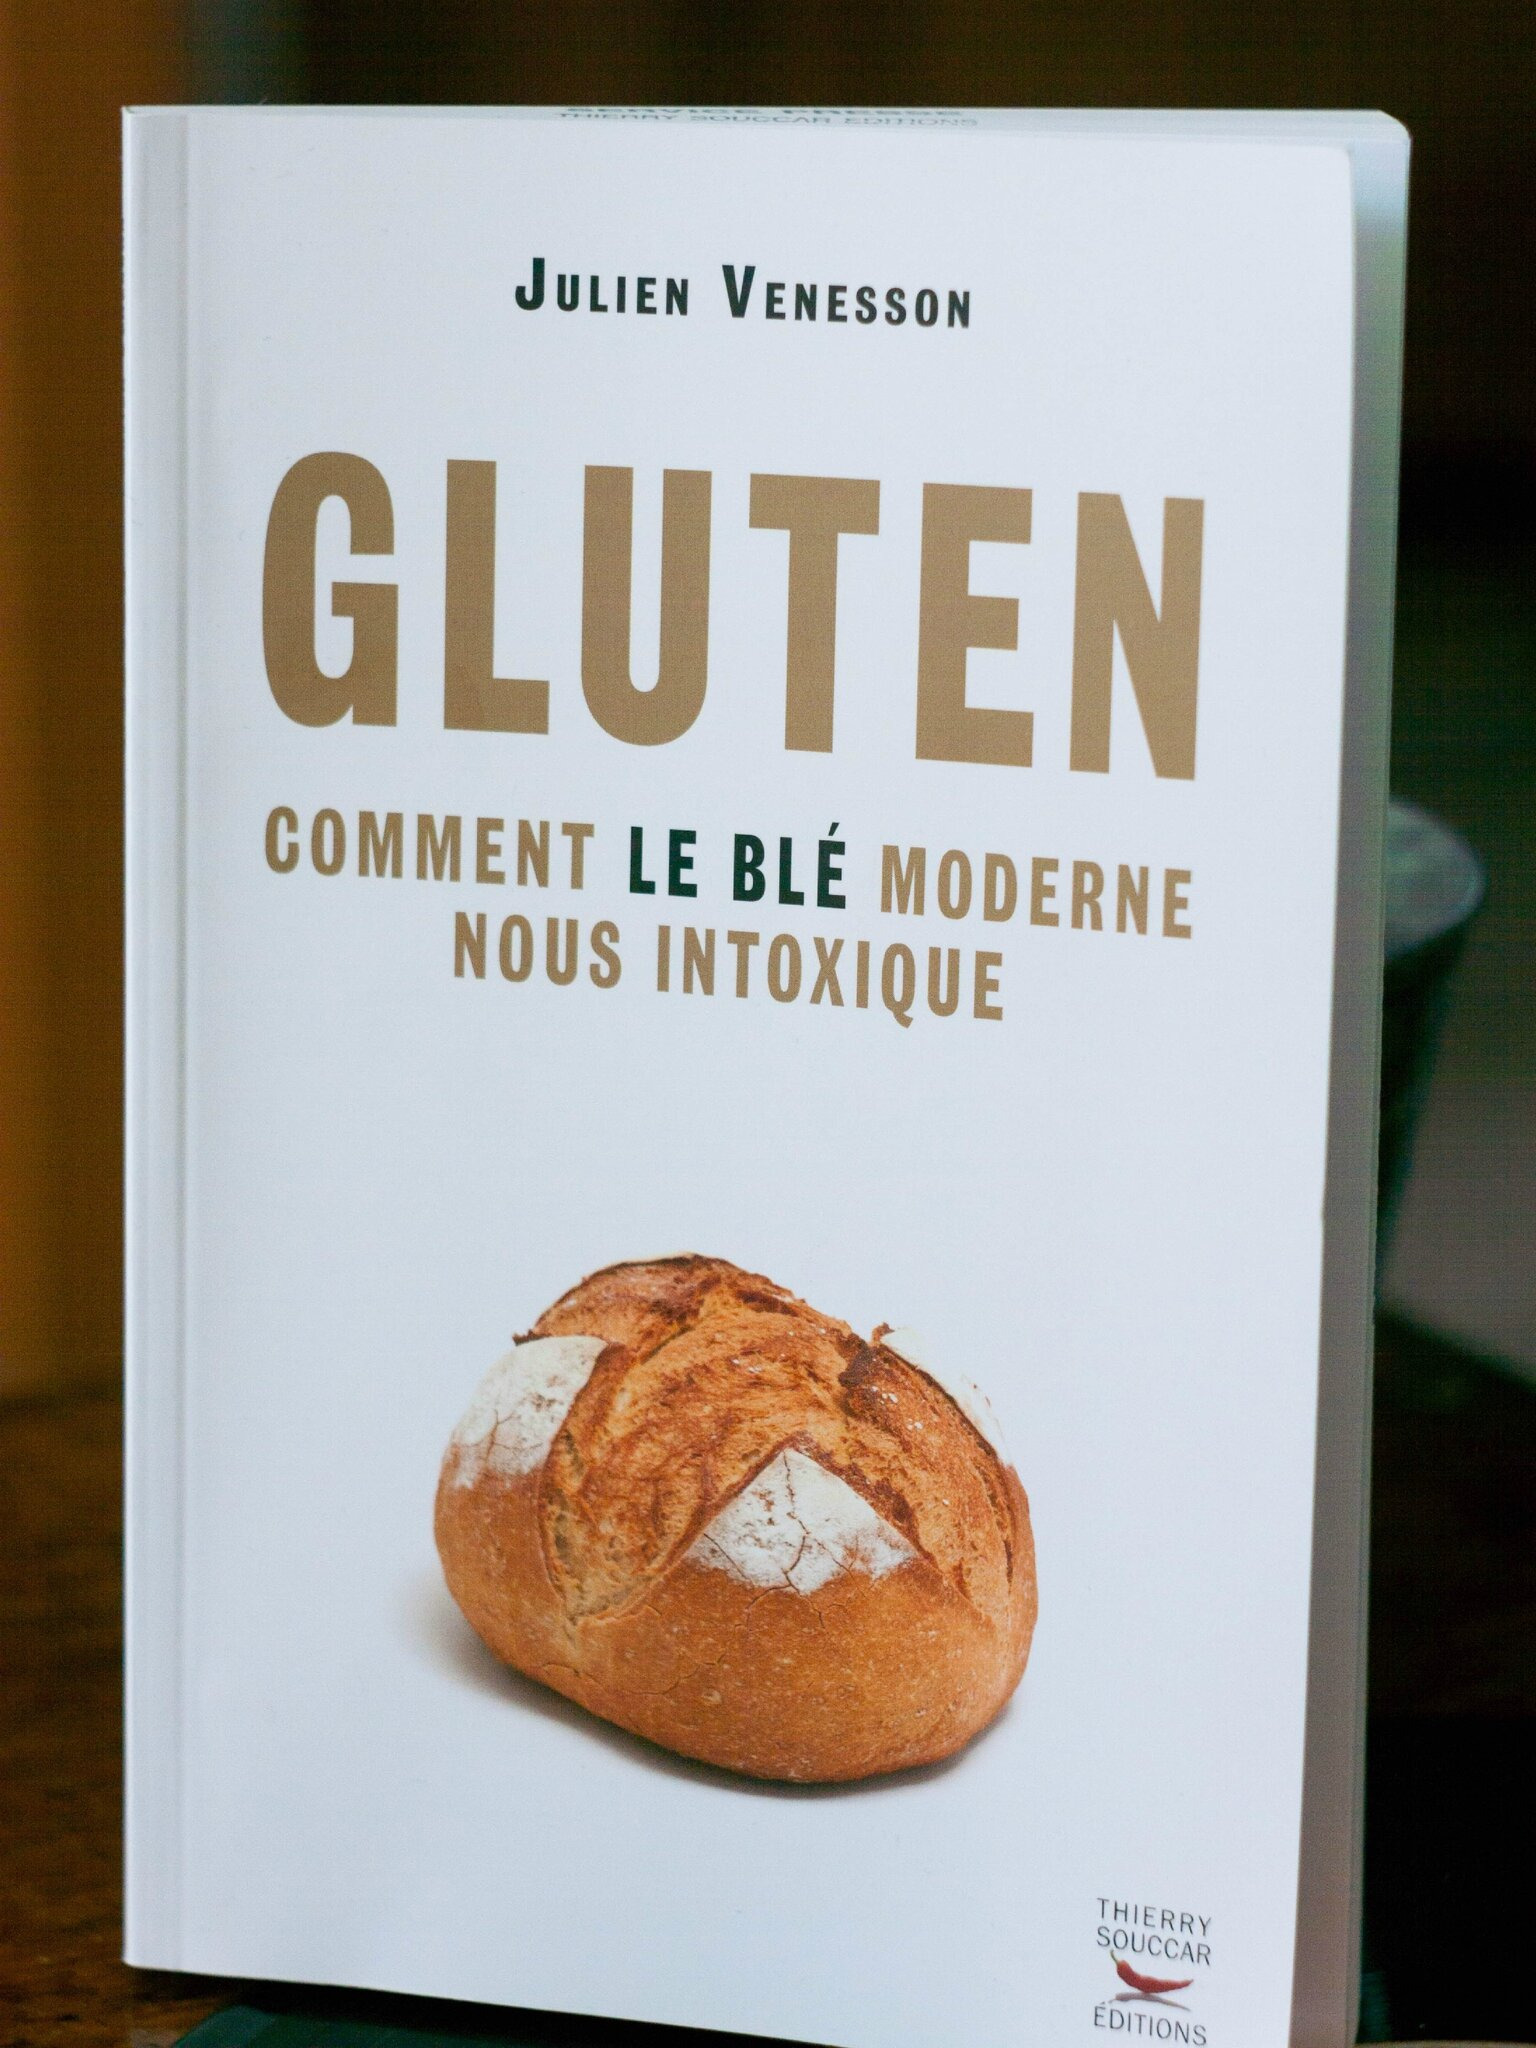 GLUTEN - JULIEN VENESSON - Editions Thierry Souccar - 5+++MISS/5